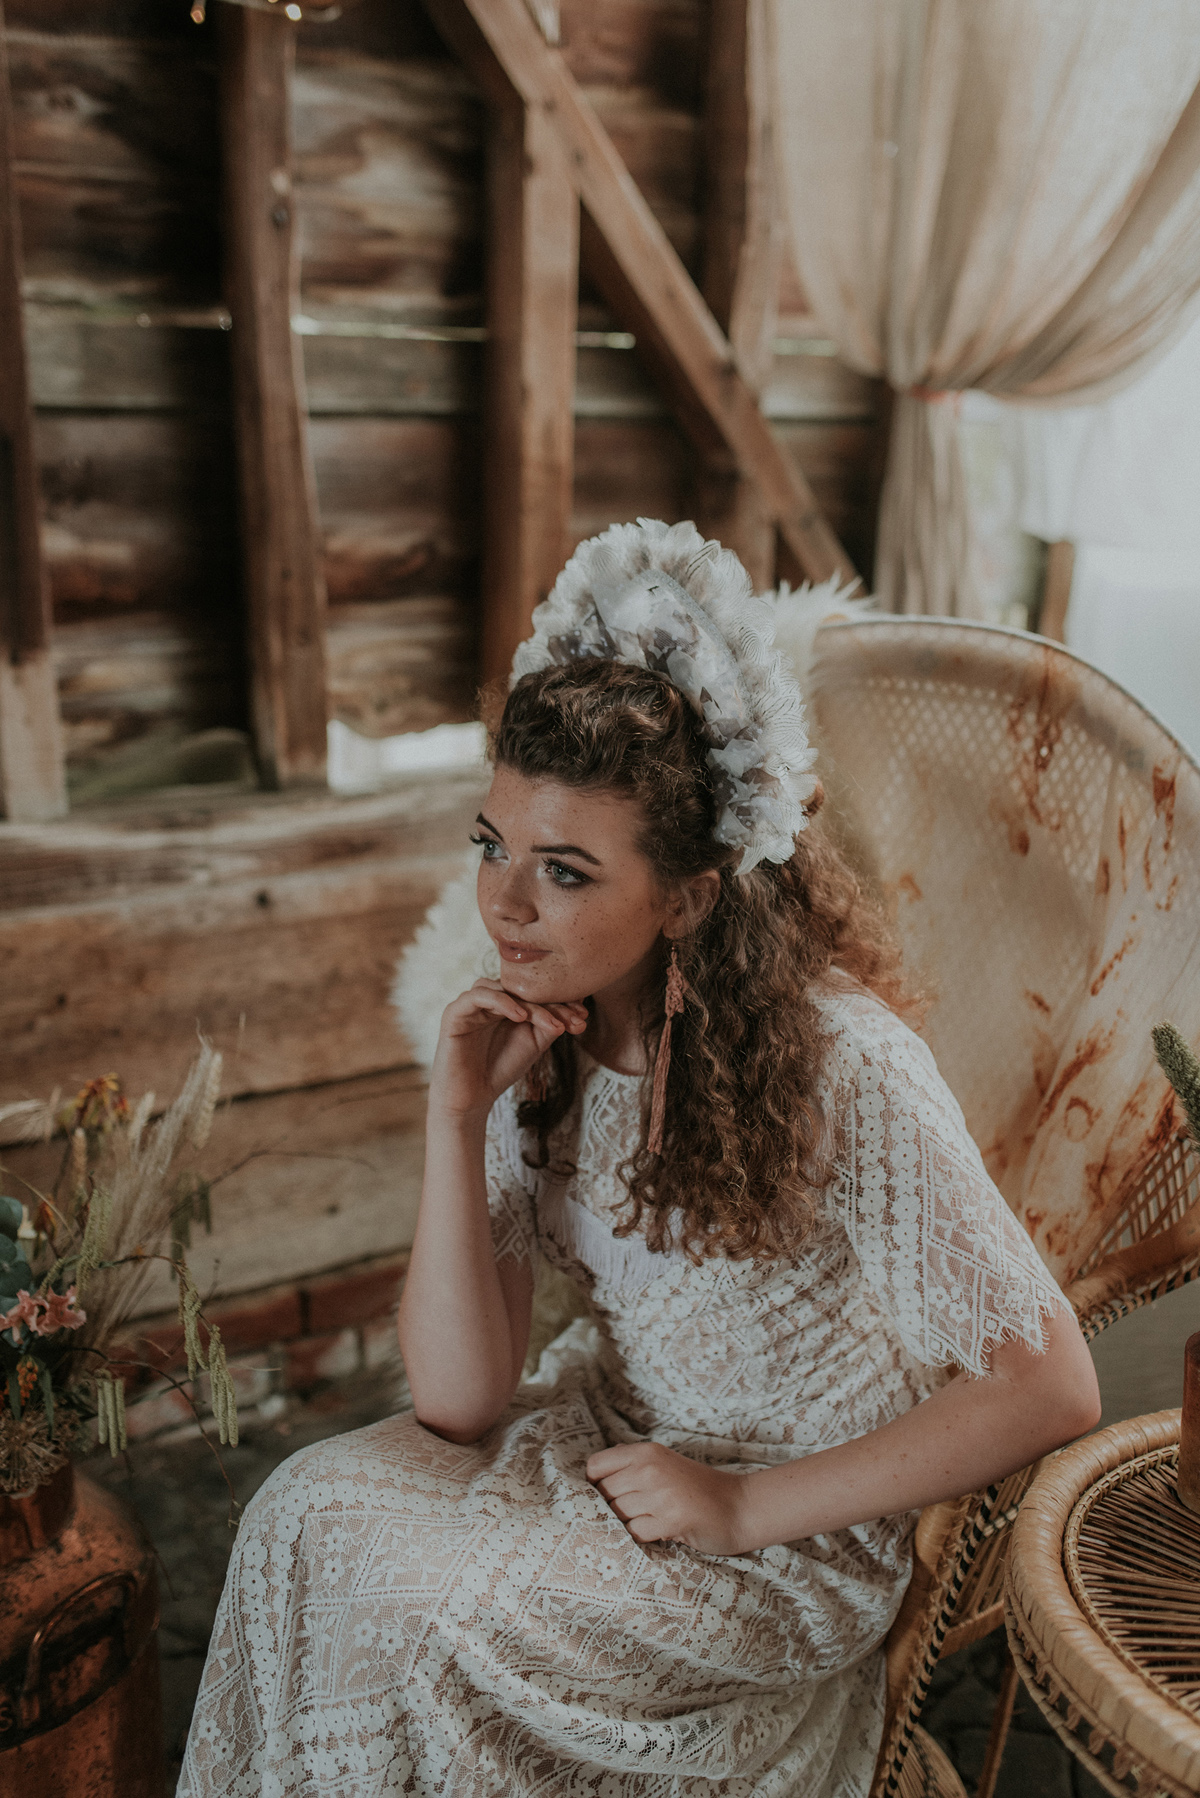 Cowgirl Bride - The Cowgirl Bride: Free Spirited, Bohemian, Wedding Day Styling